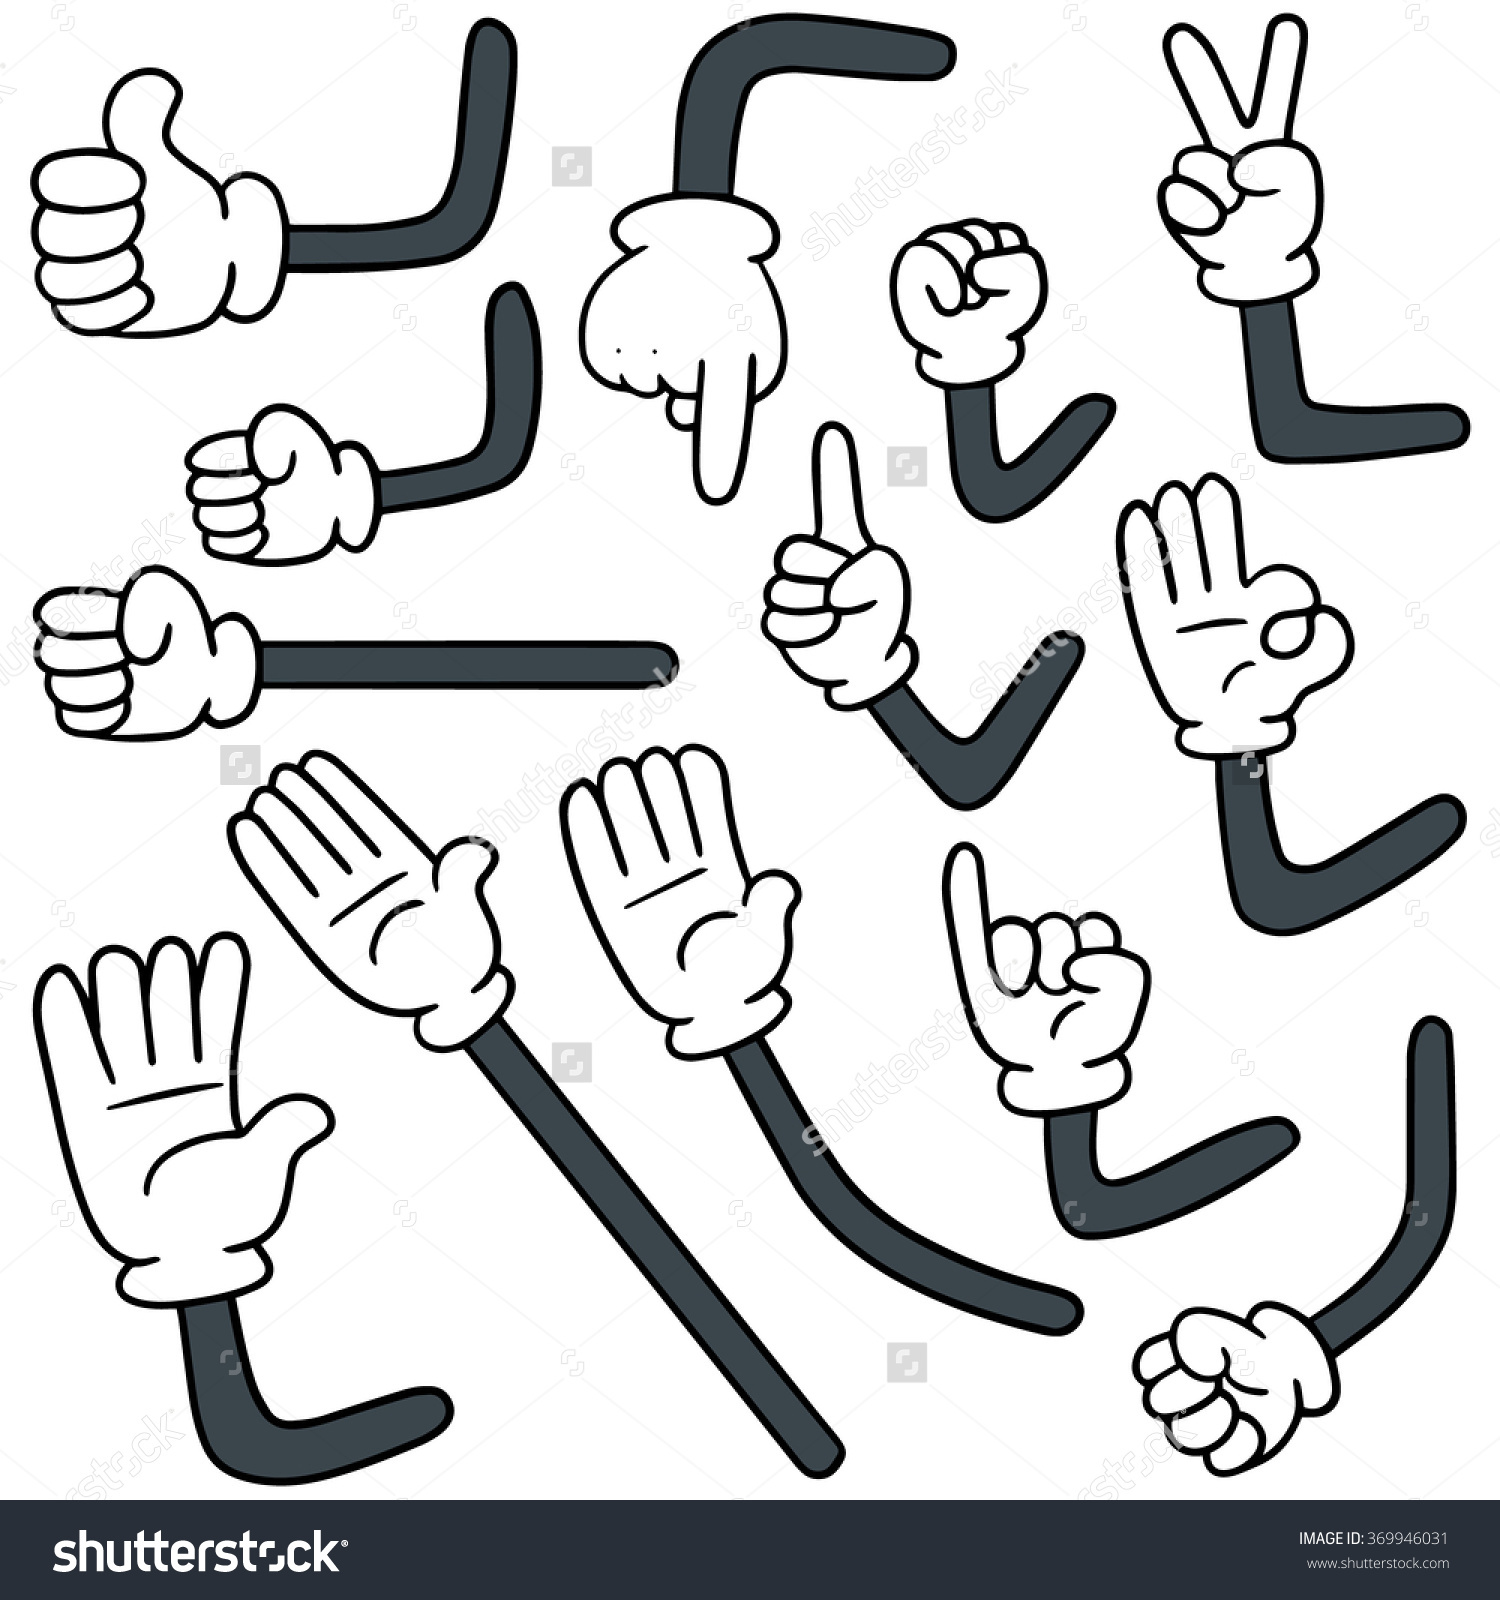 collection of drawing. Arm clipart cartoon